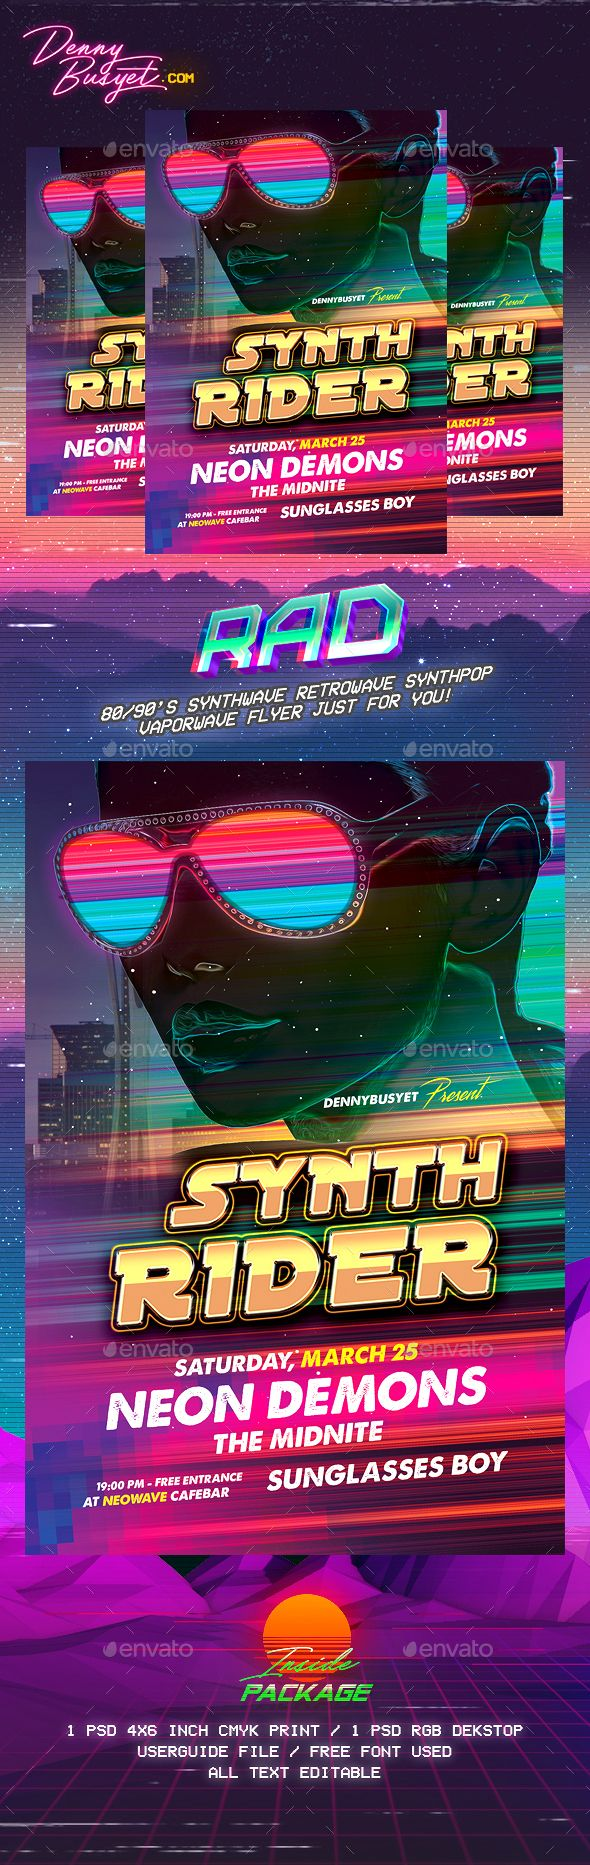 Synth Rider Synthwave Flyer Template — Photoshop PSD #synthwave #rad • Download ➝ https://graphicriver.net/item/synth-rider-synthwave-flyer-template/19667694?ref=pxcr